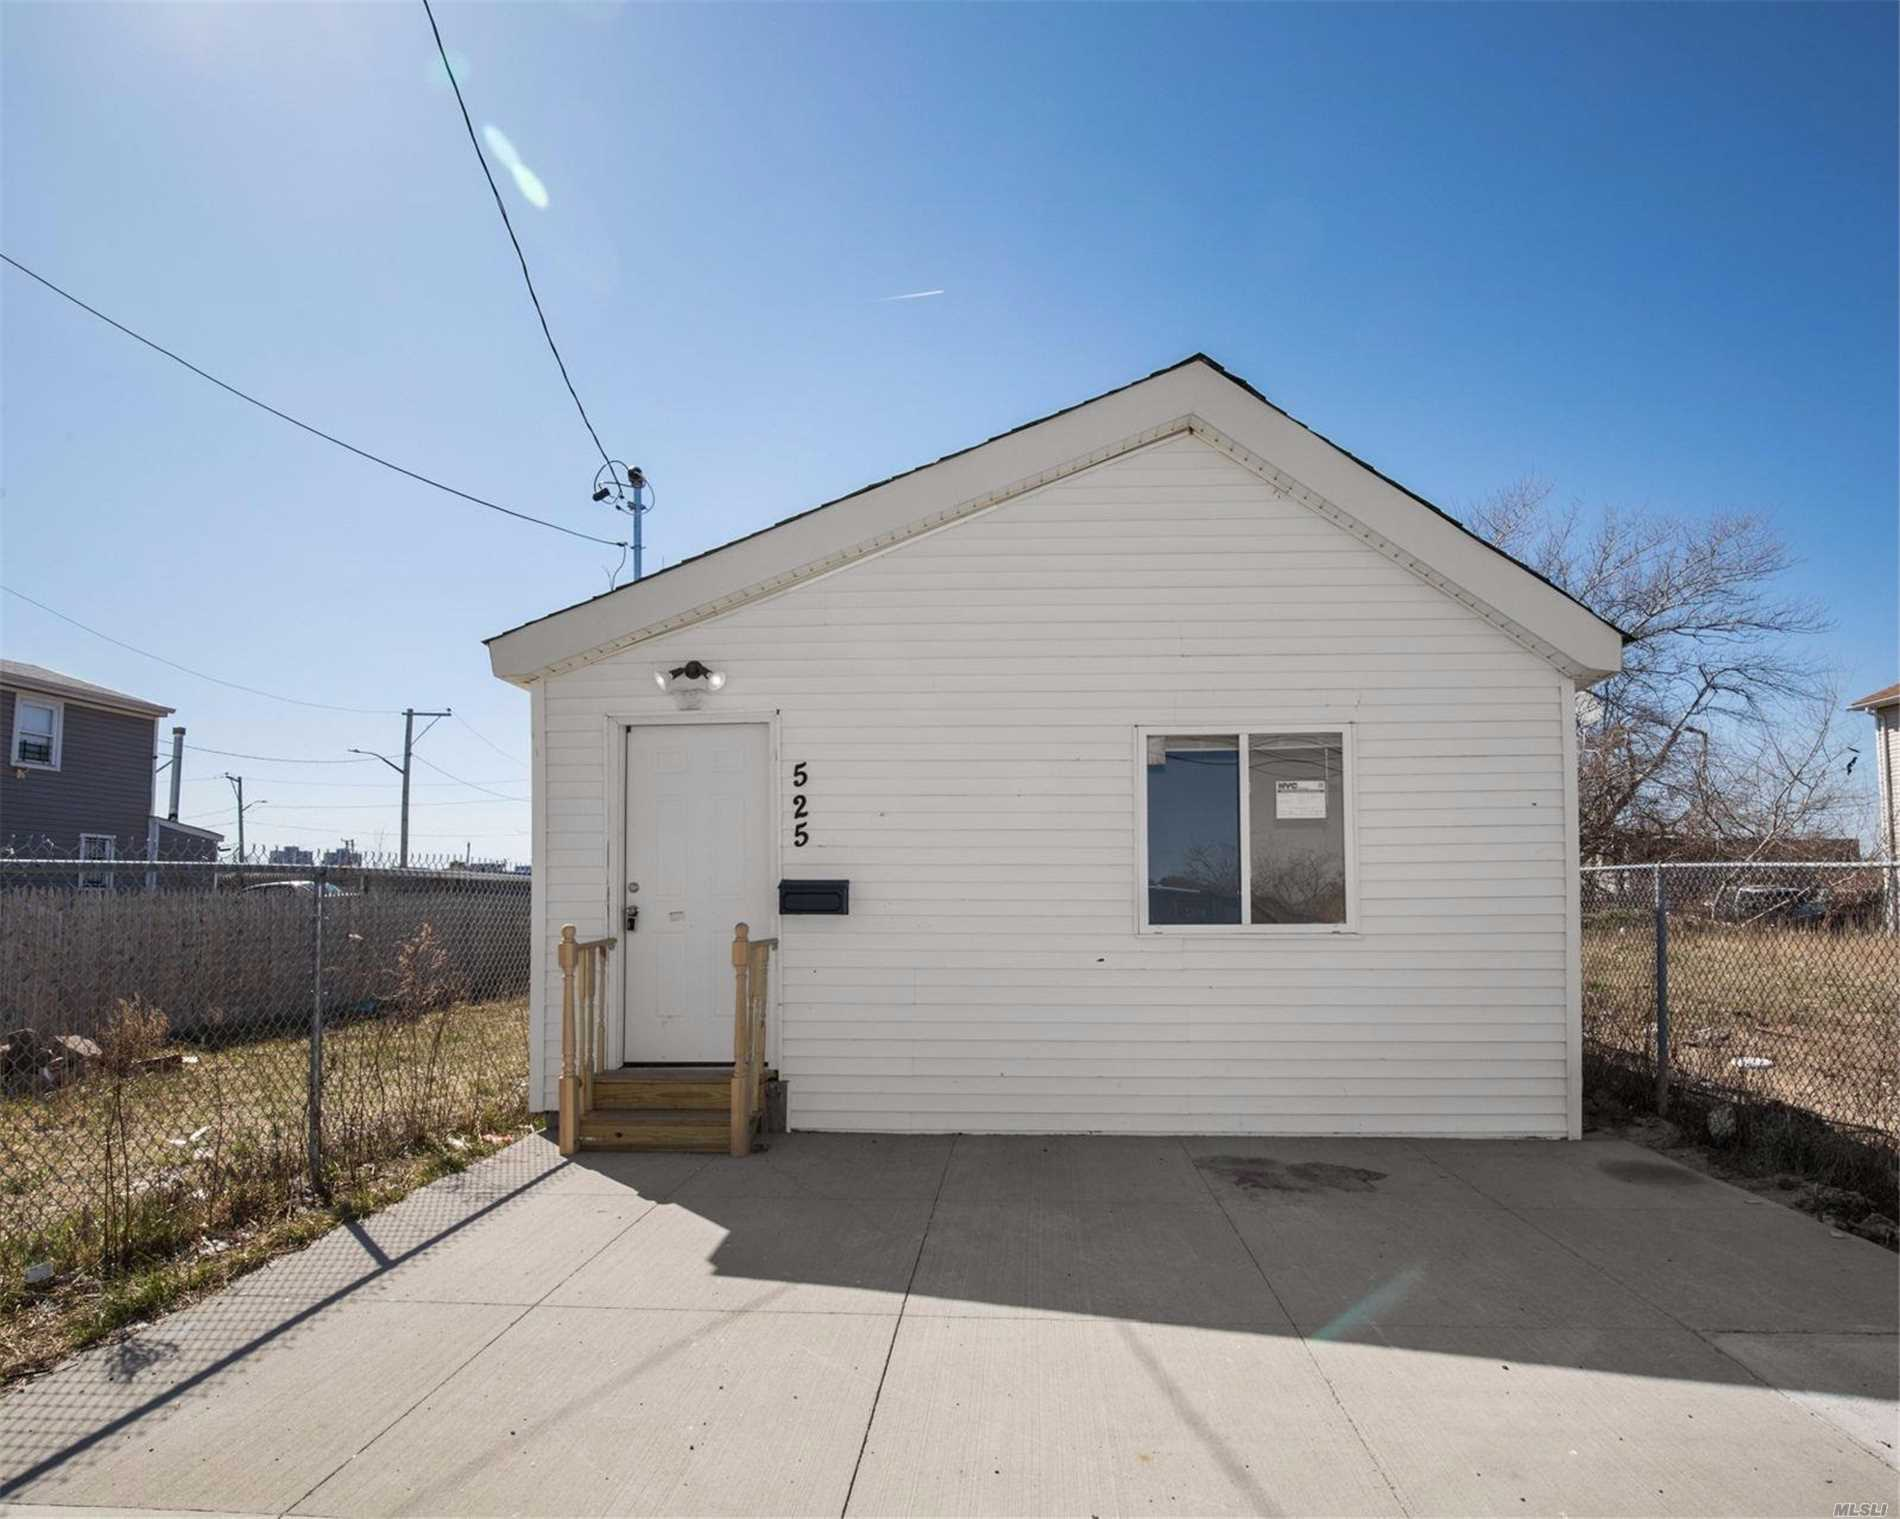 RENOVATED 3BR 1 FULL BATH HOUSE FOR RENT WITH PRIVATE BACKYARD AND LAUNDRY ROOM A MUST SEE